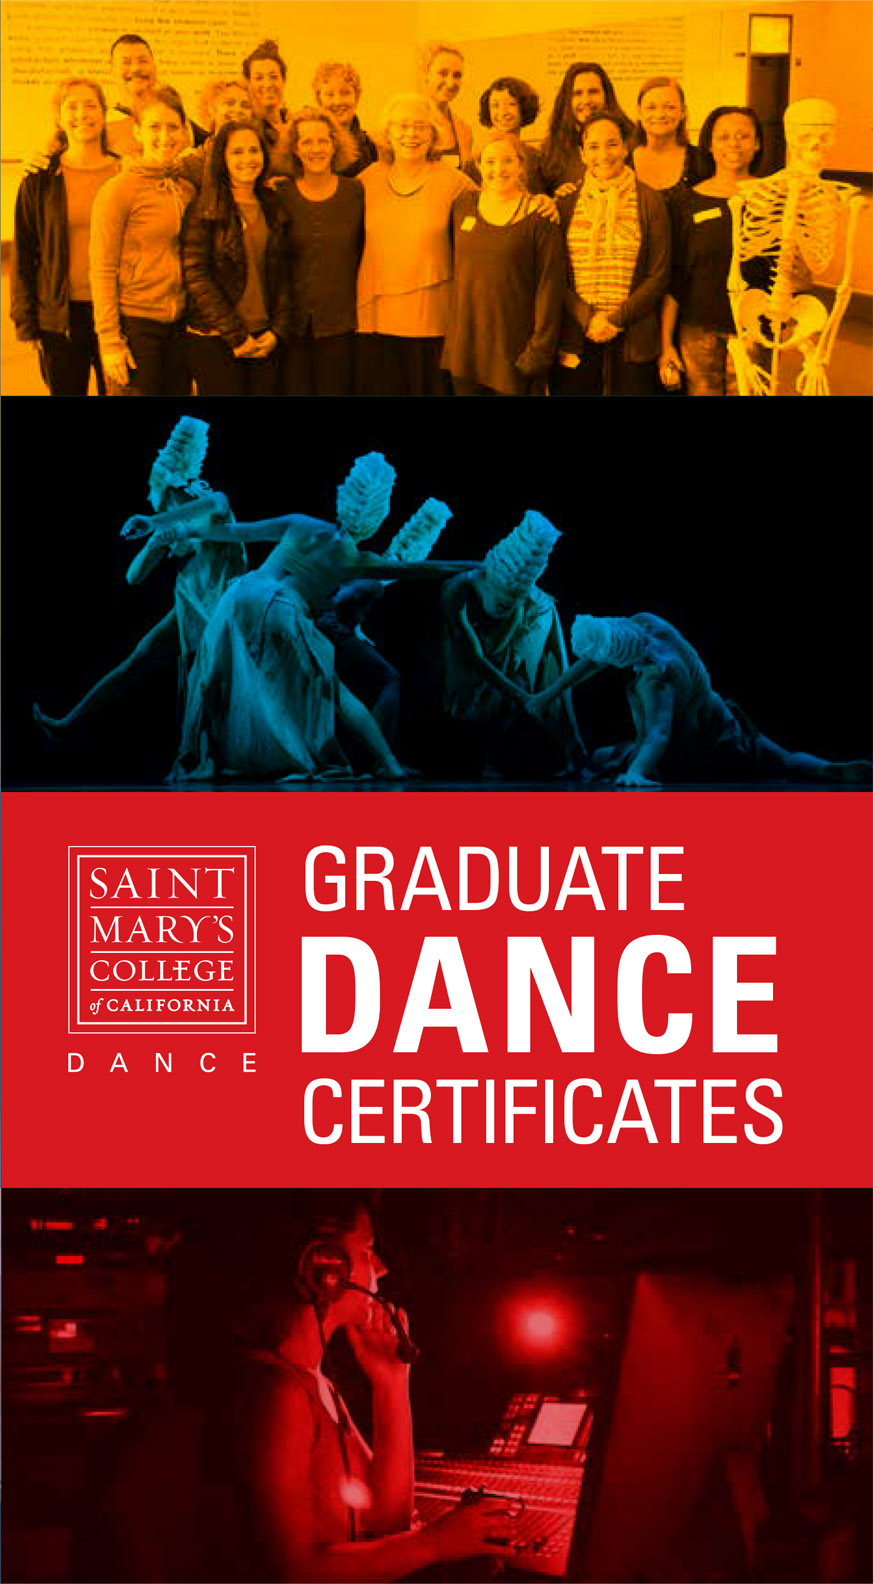 Download The Graduate Certificate Brochure